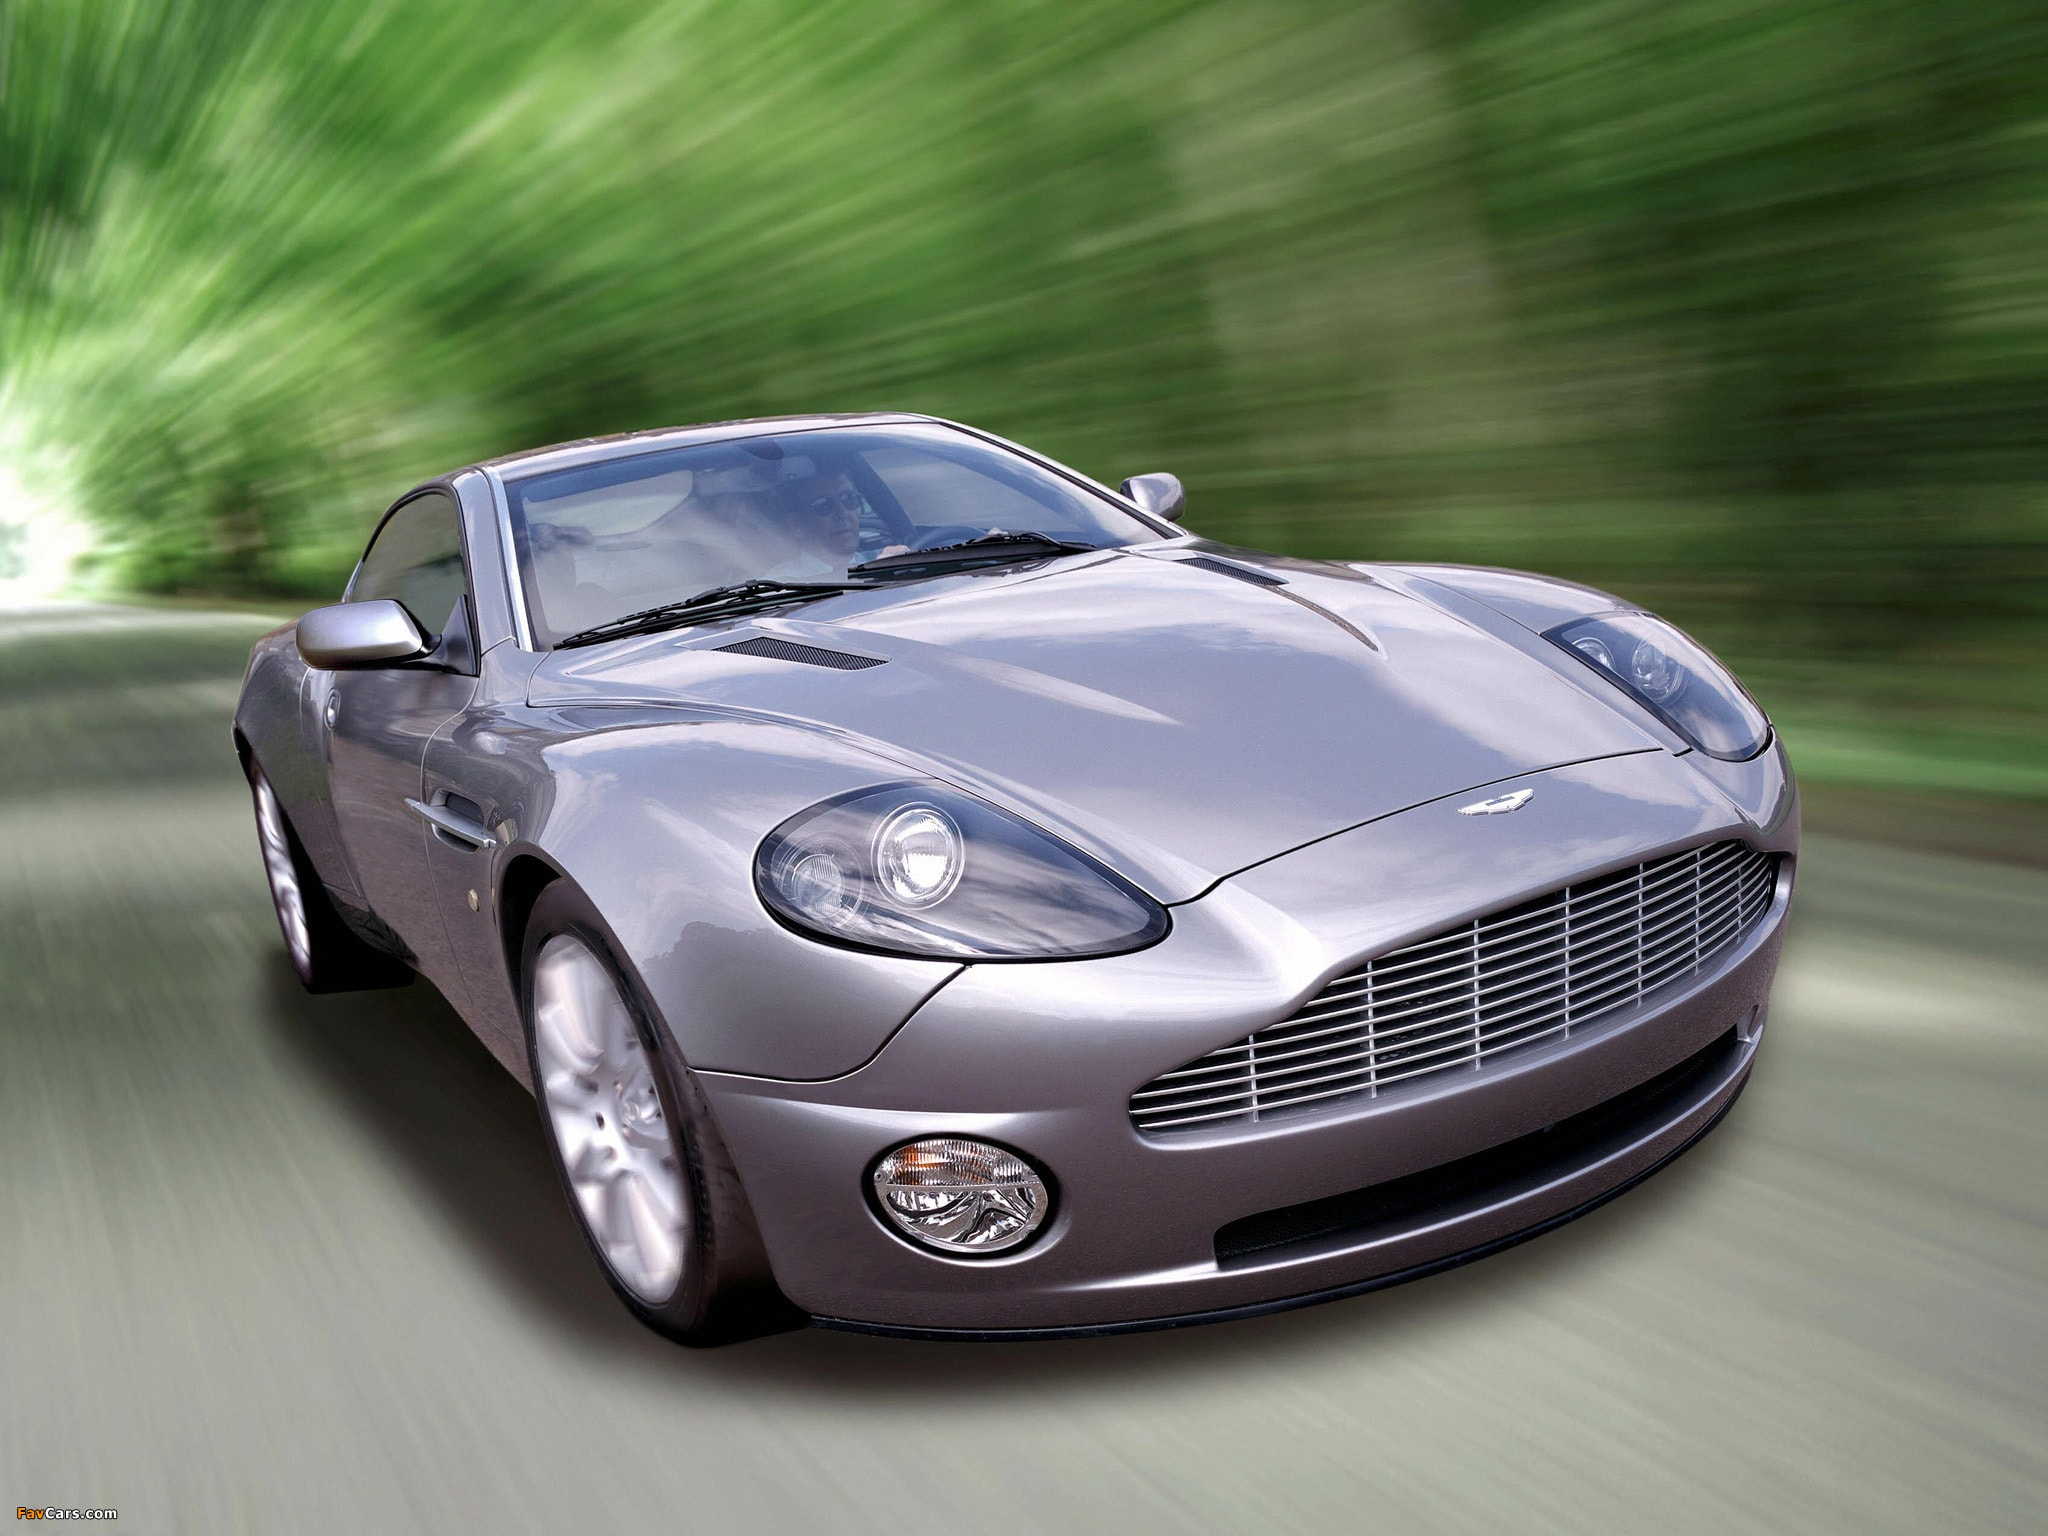 2001 Aston Martin Vanquish Screensavers